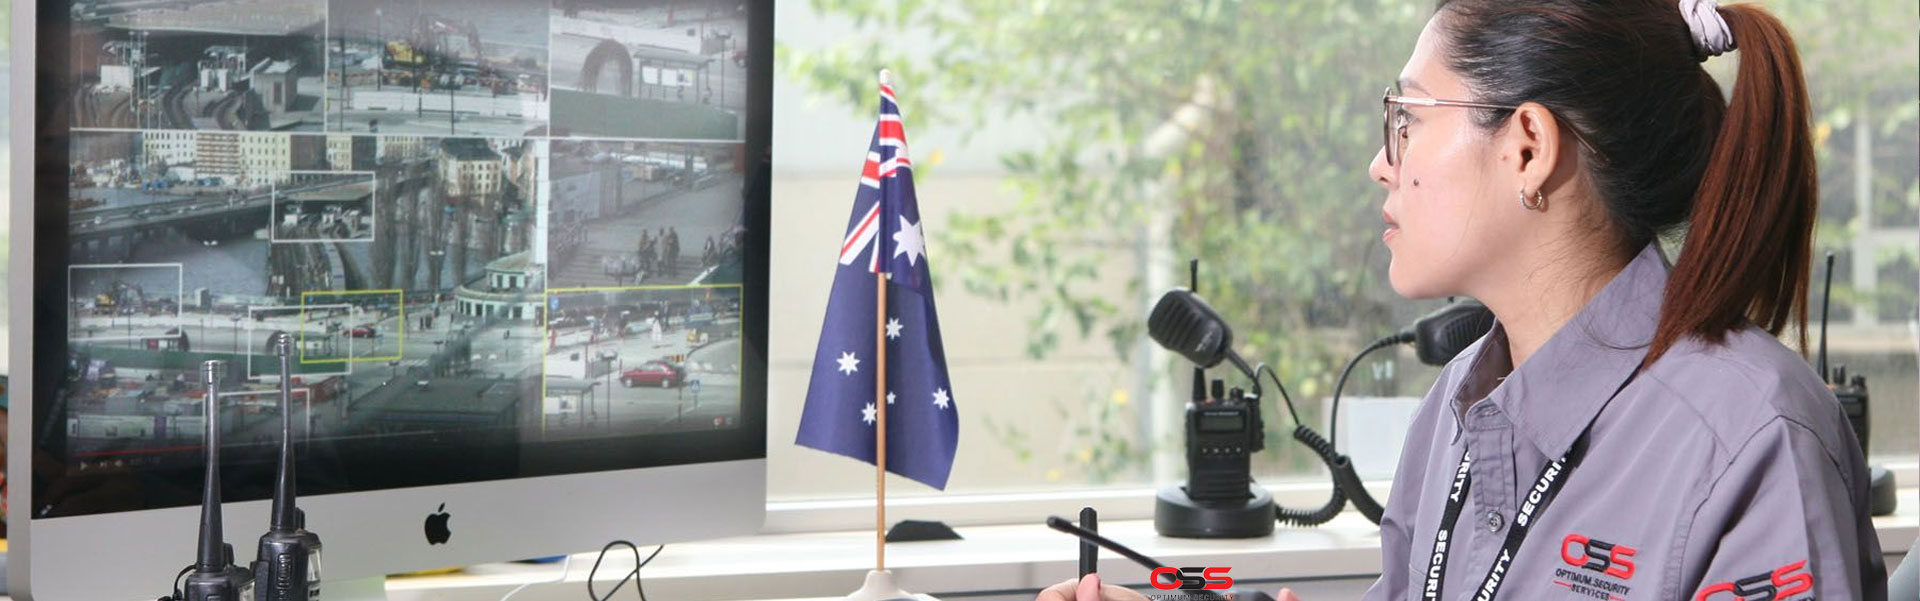 cctv and security solutions sydney